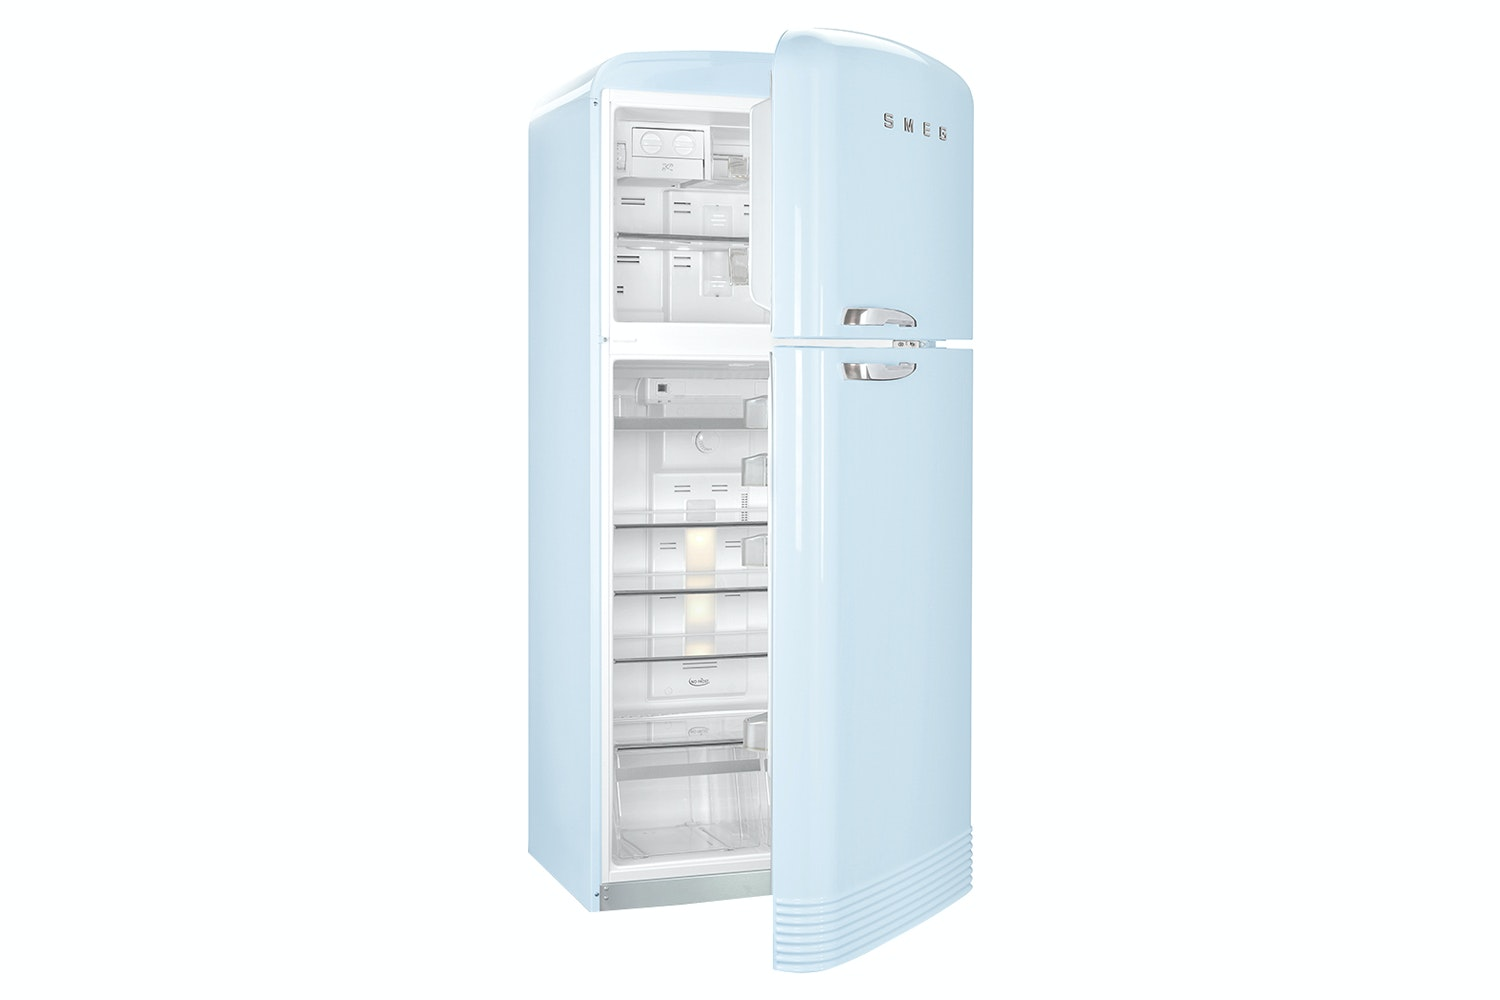 Smeg Retro Style Freestanding Fridge Freezer | FAB50RPB | Pastel Blue